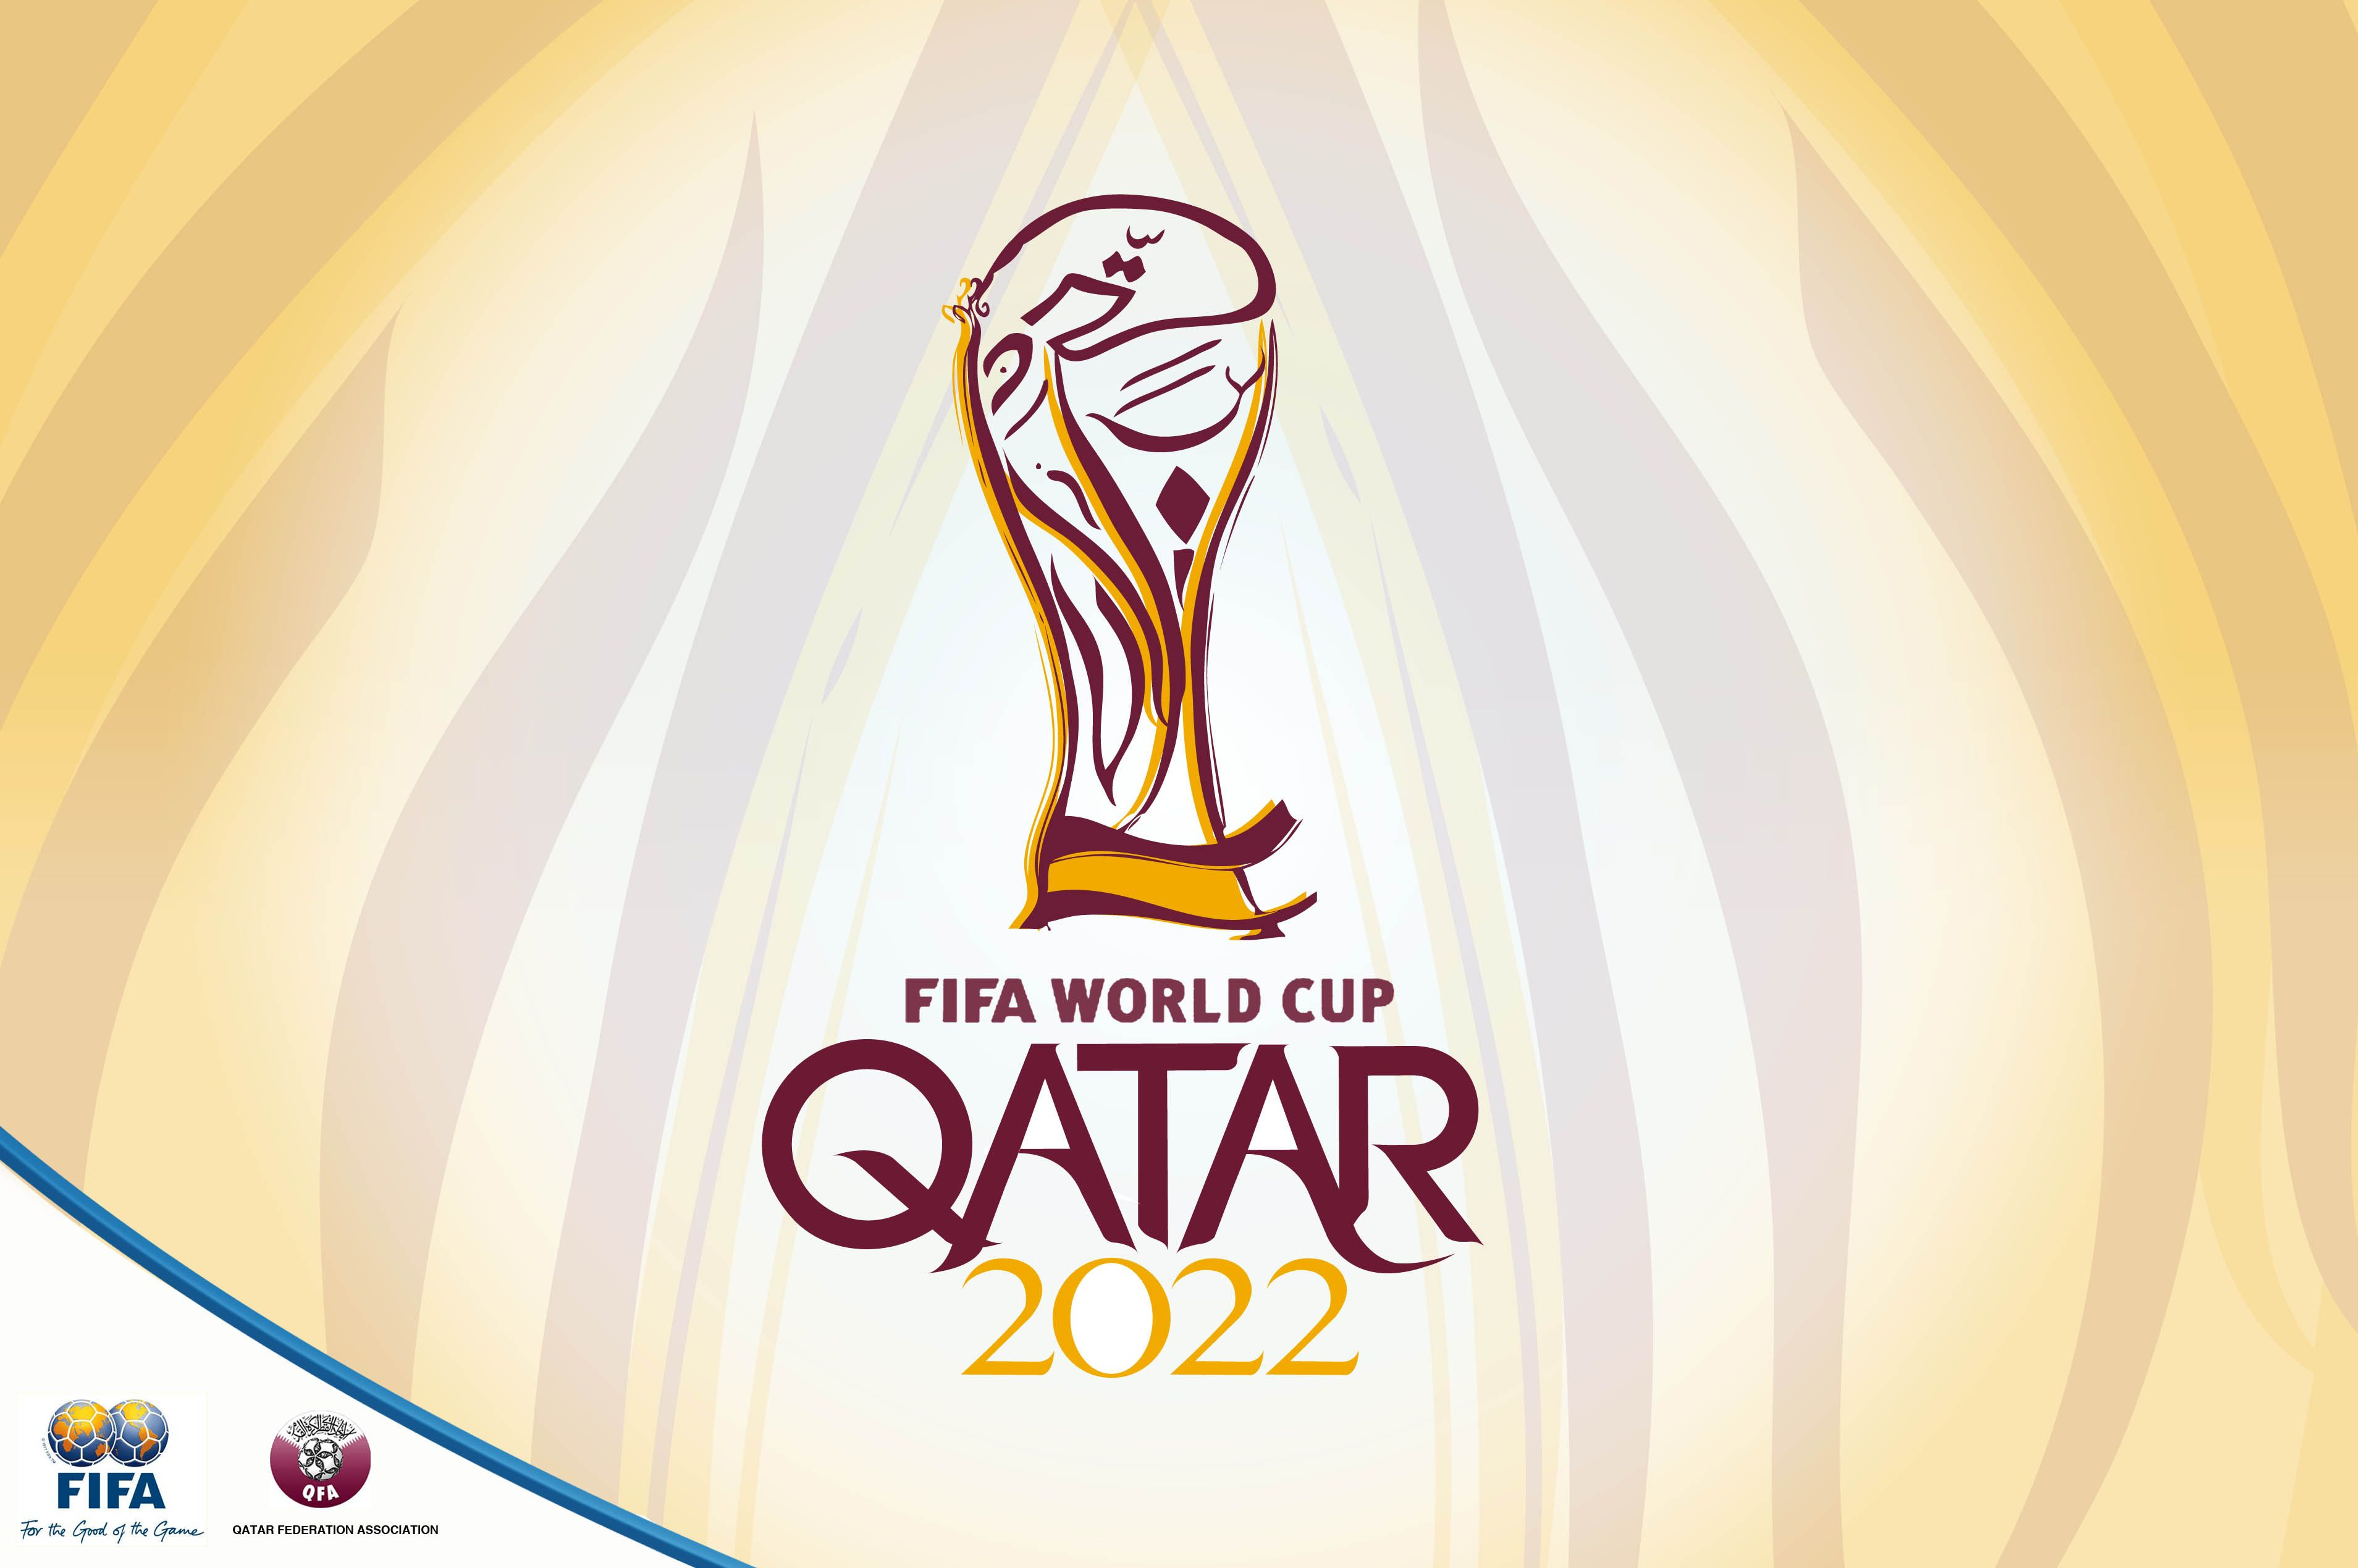 List Of Stadiums In Qatar For Fifa World Cup 2022 2022 Fifa World Cup World Cup Qualifiers World Cup 2022